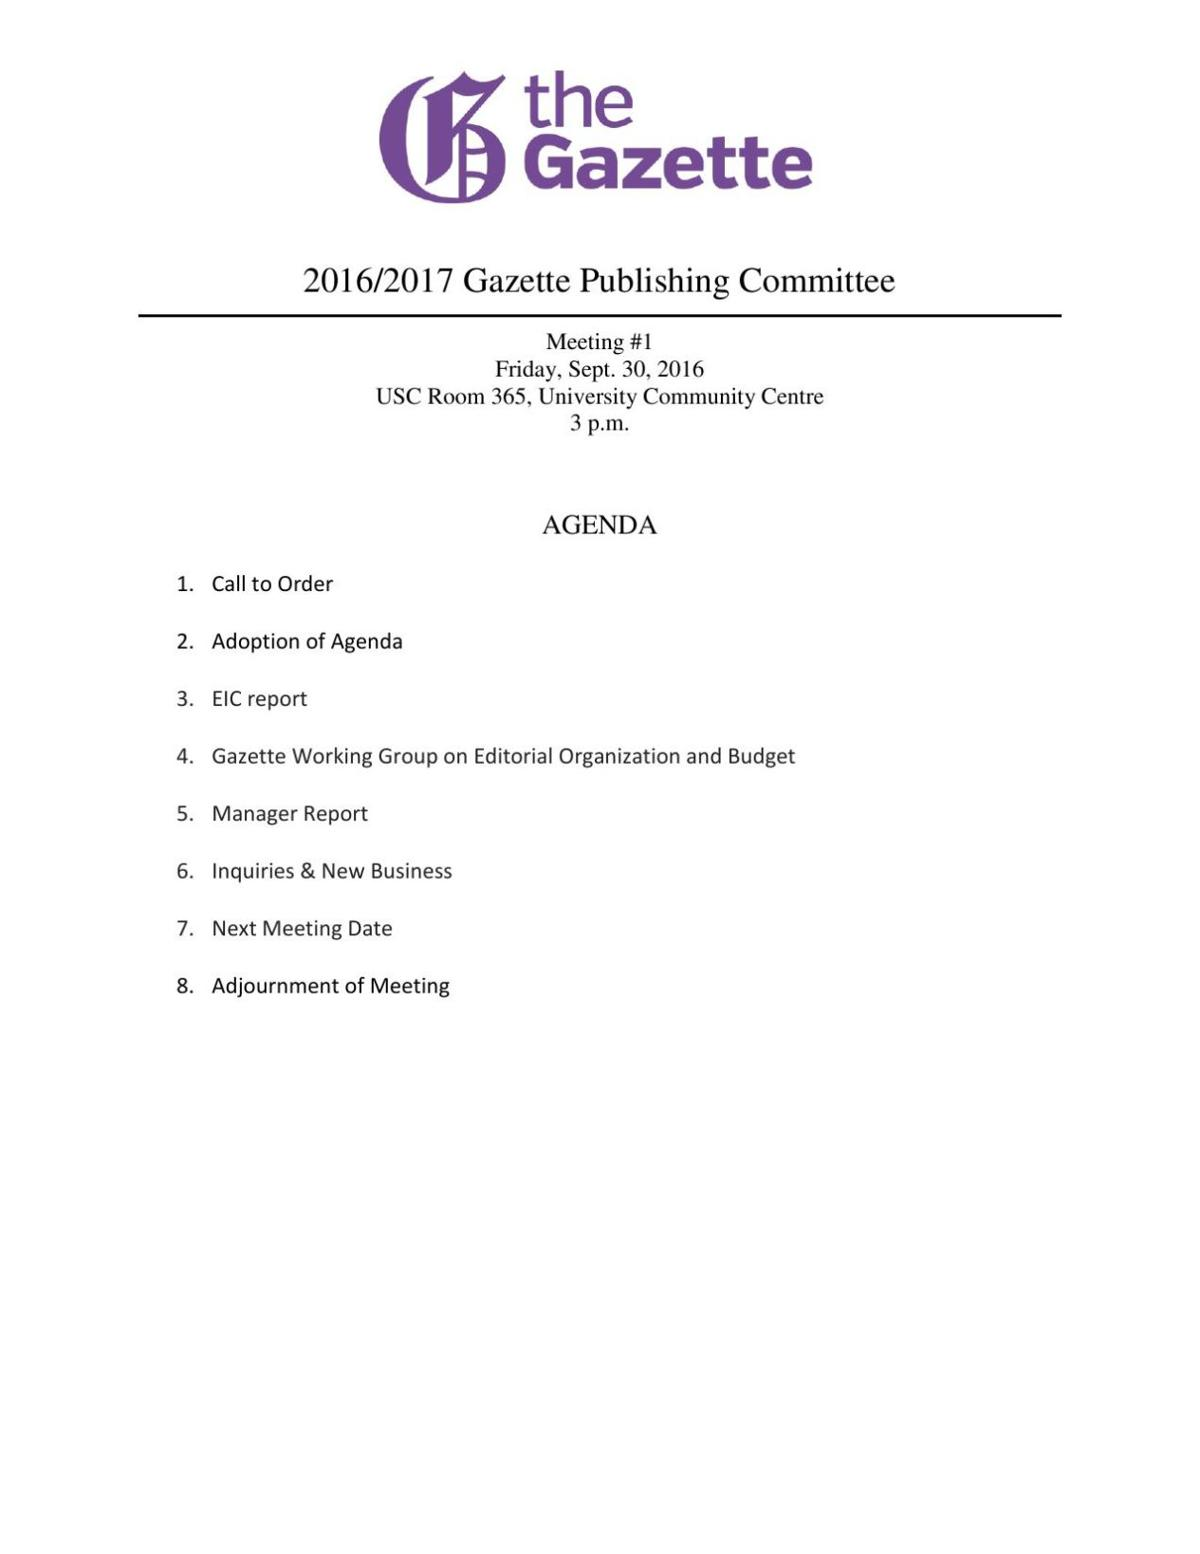 PDF: Publications Committee agenda Sept. 30